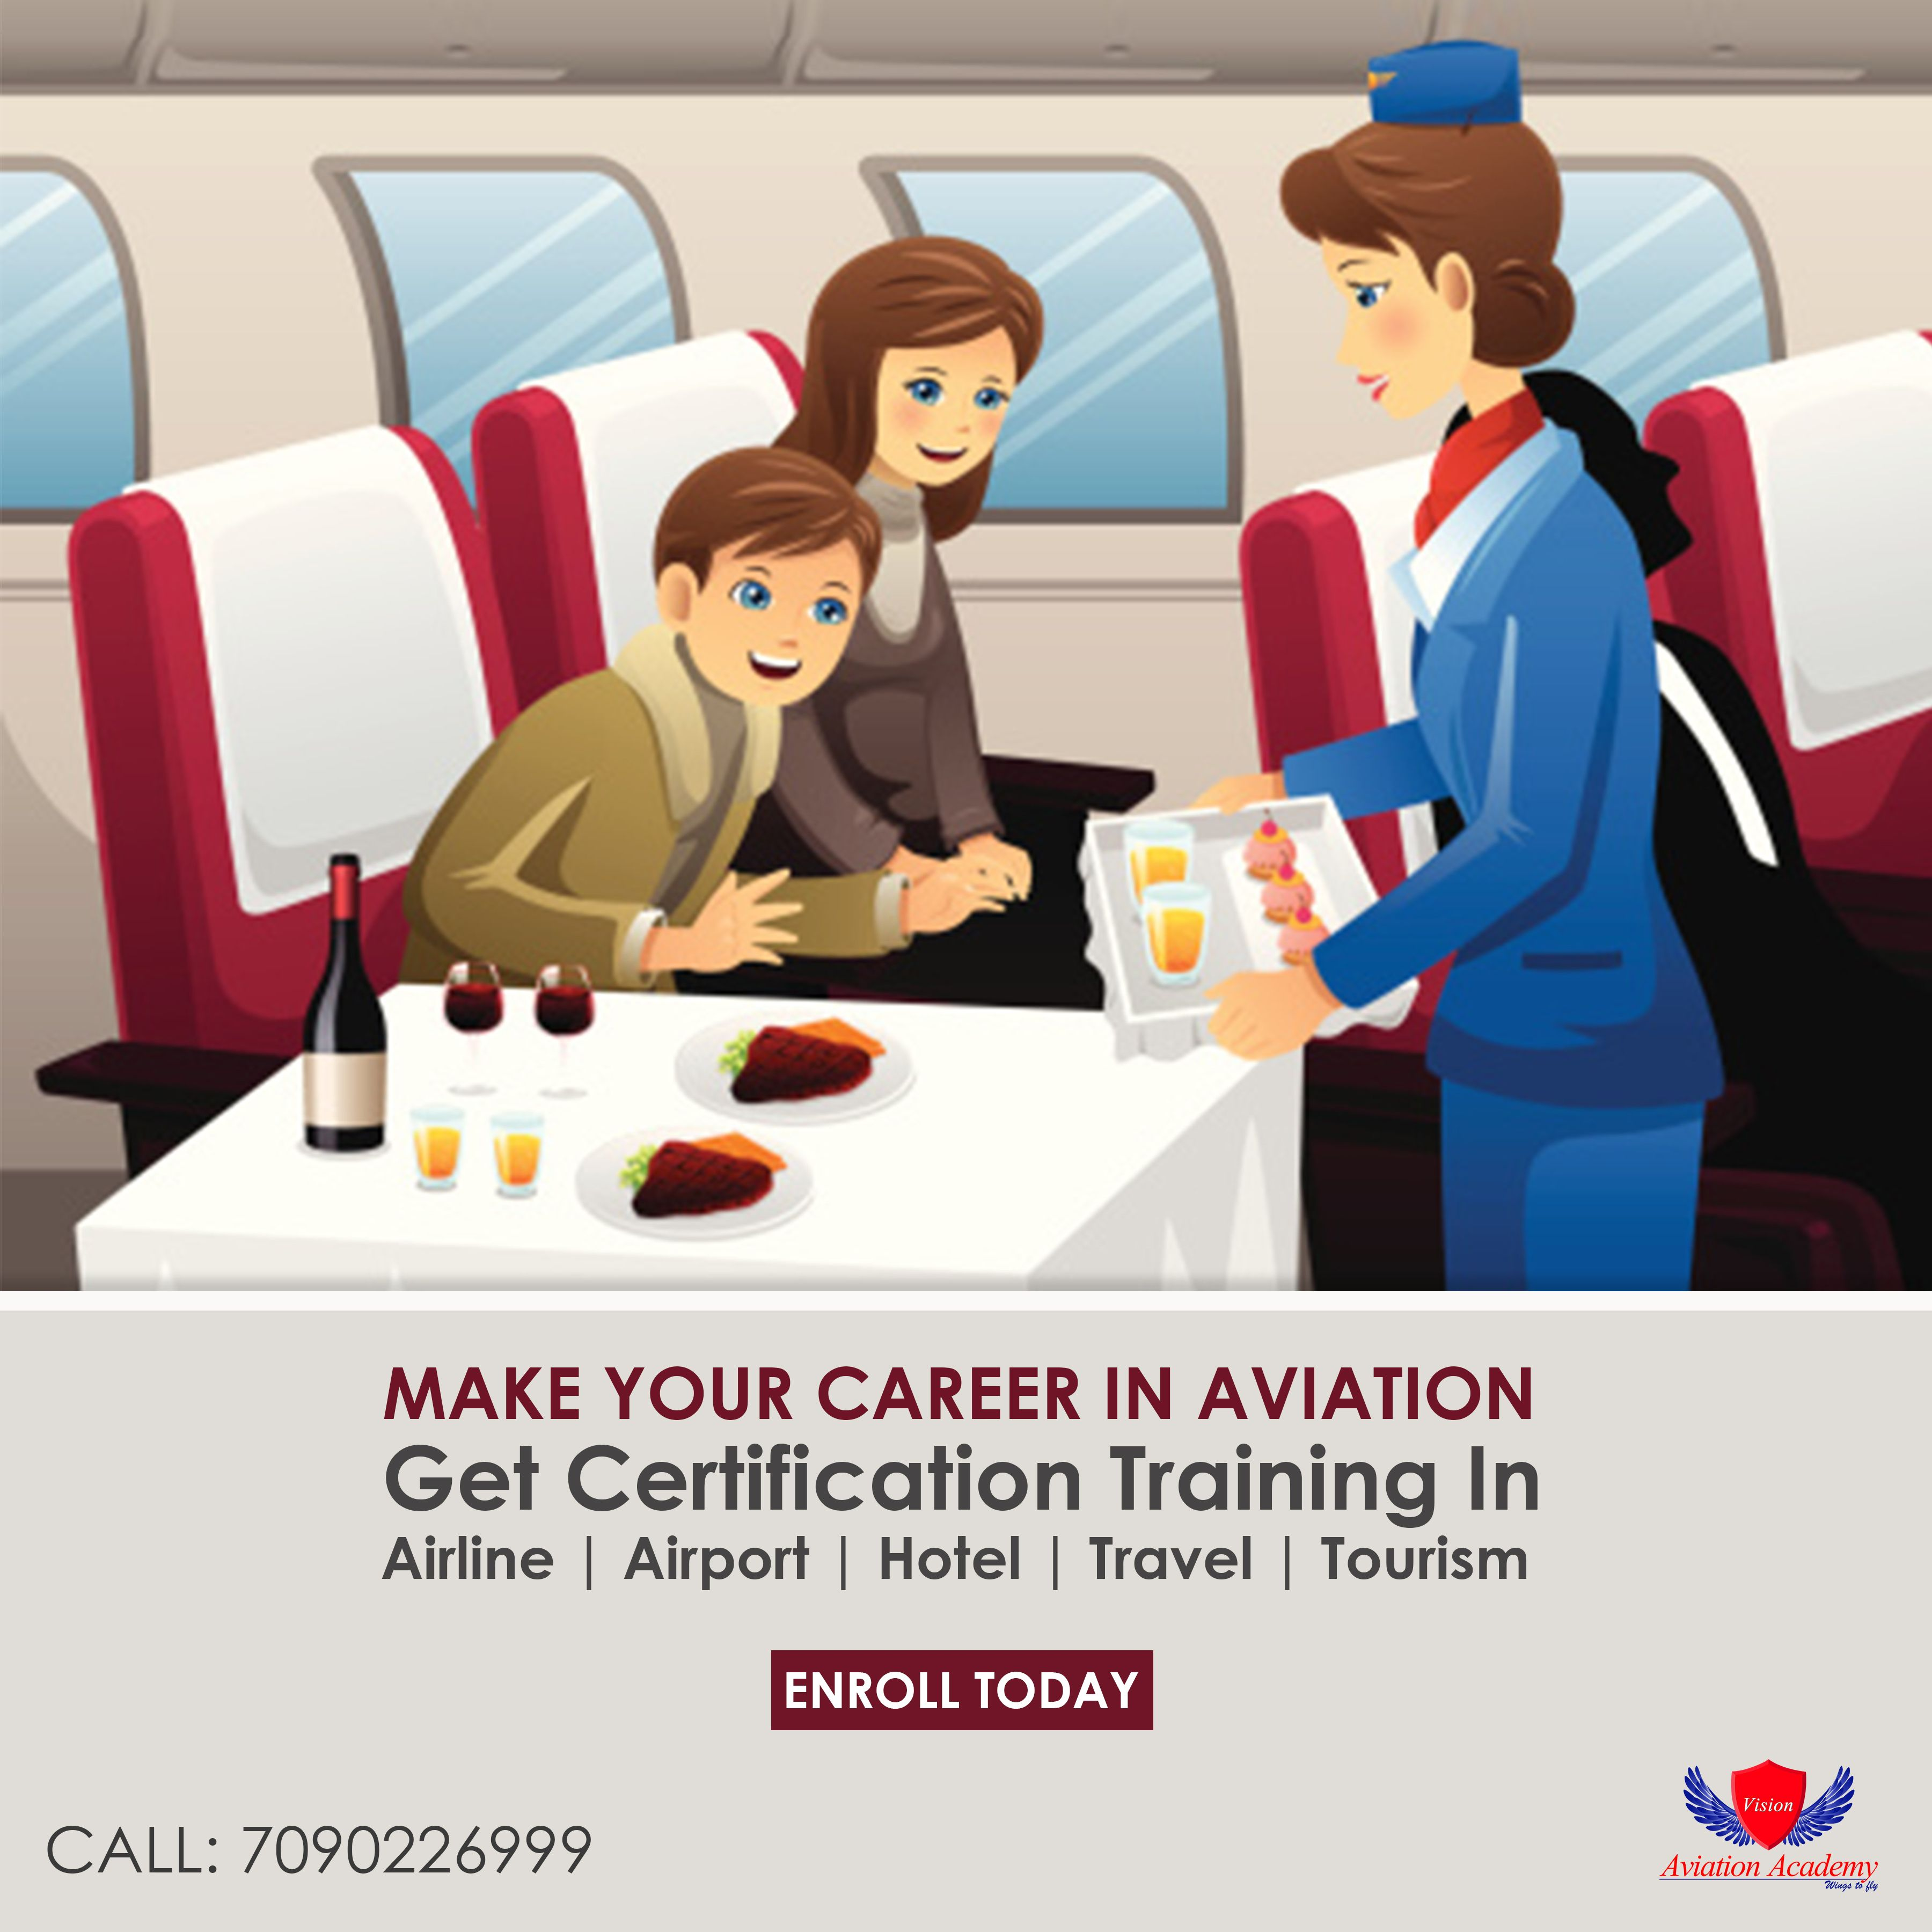 make your career in aviation get certification training in make your career in aviation get certification training in airline airport hotel travel tourism placement assistance call 7090226999